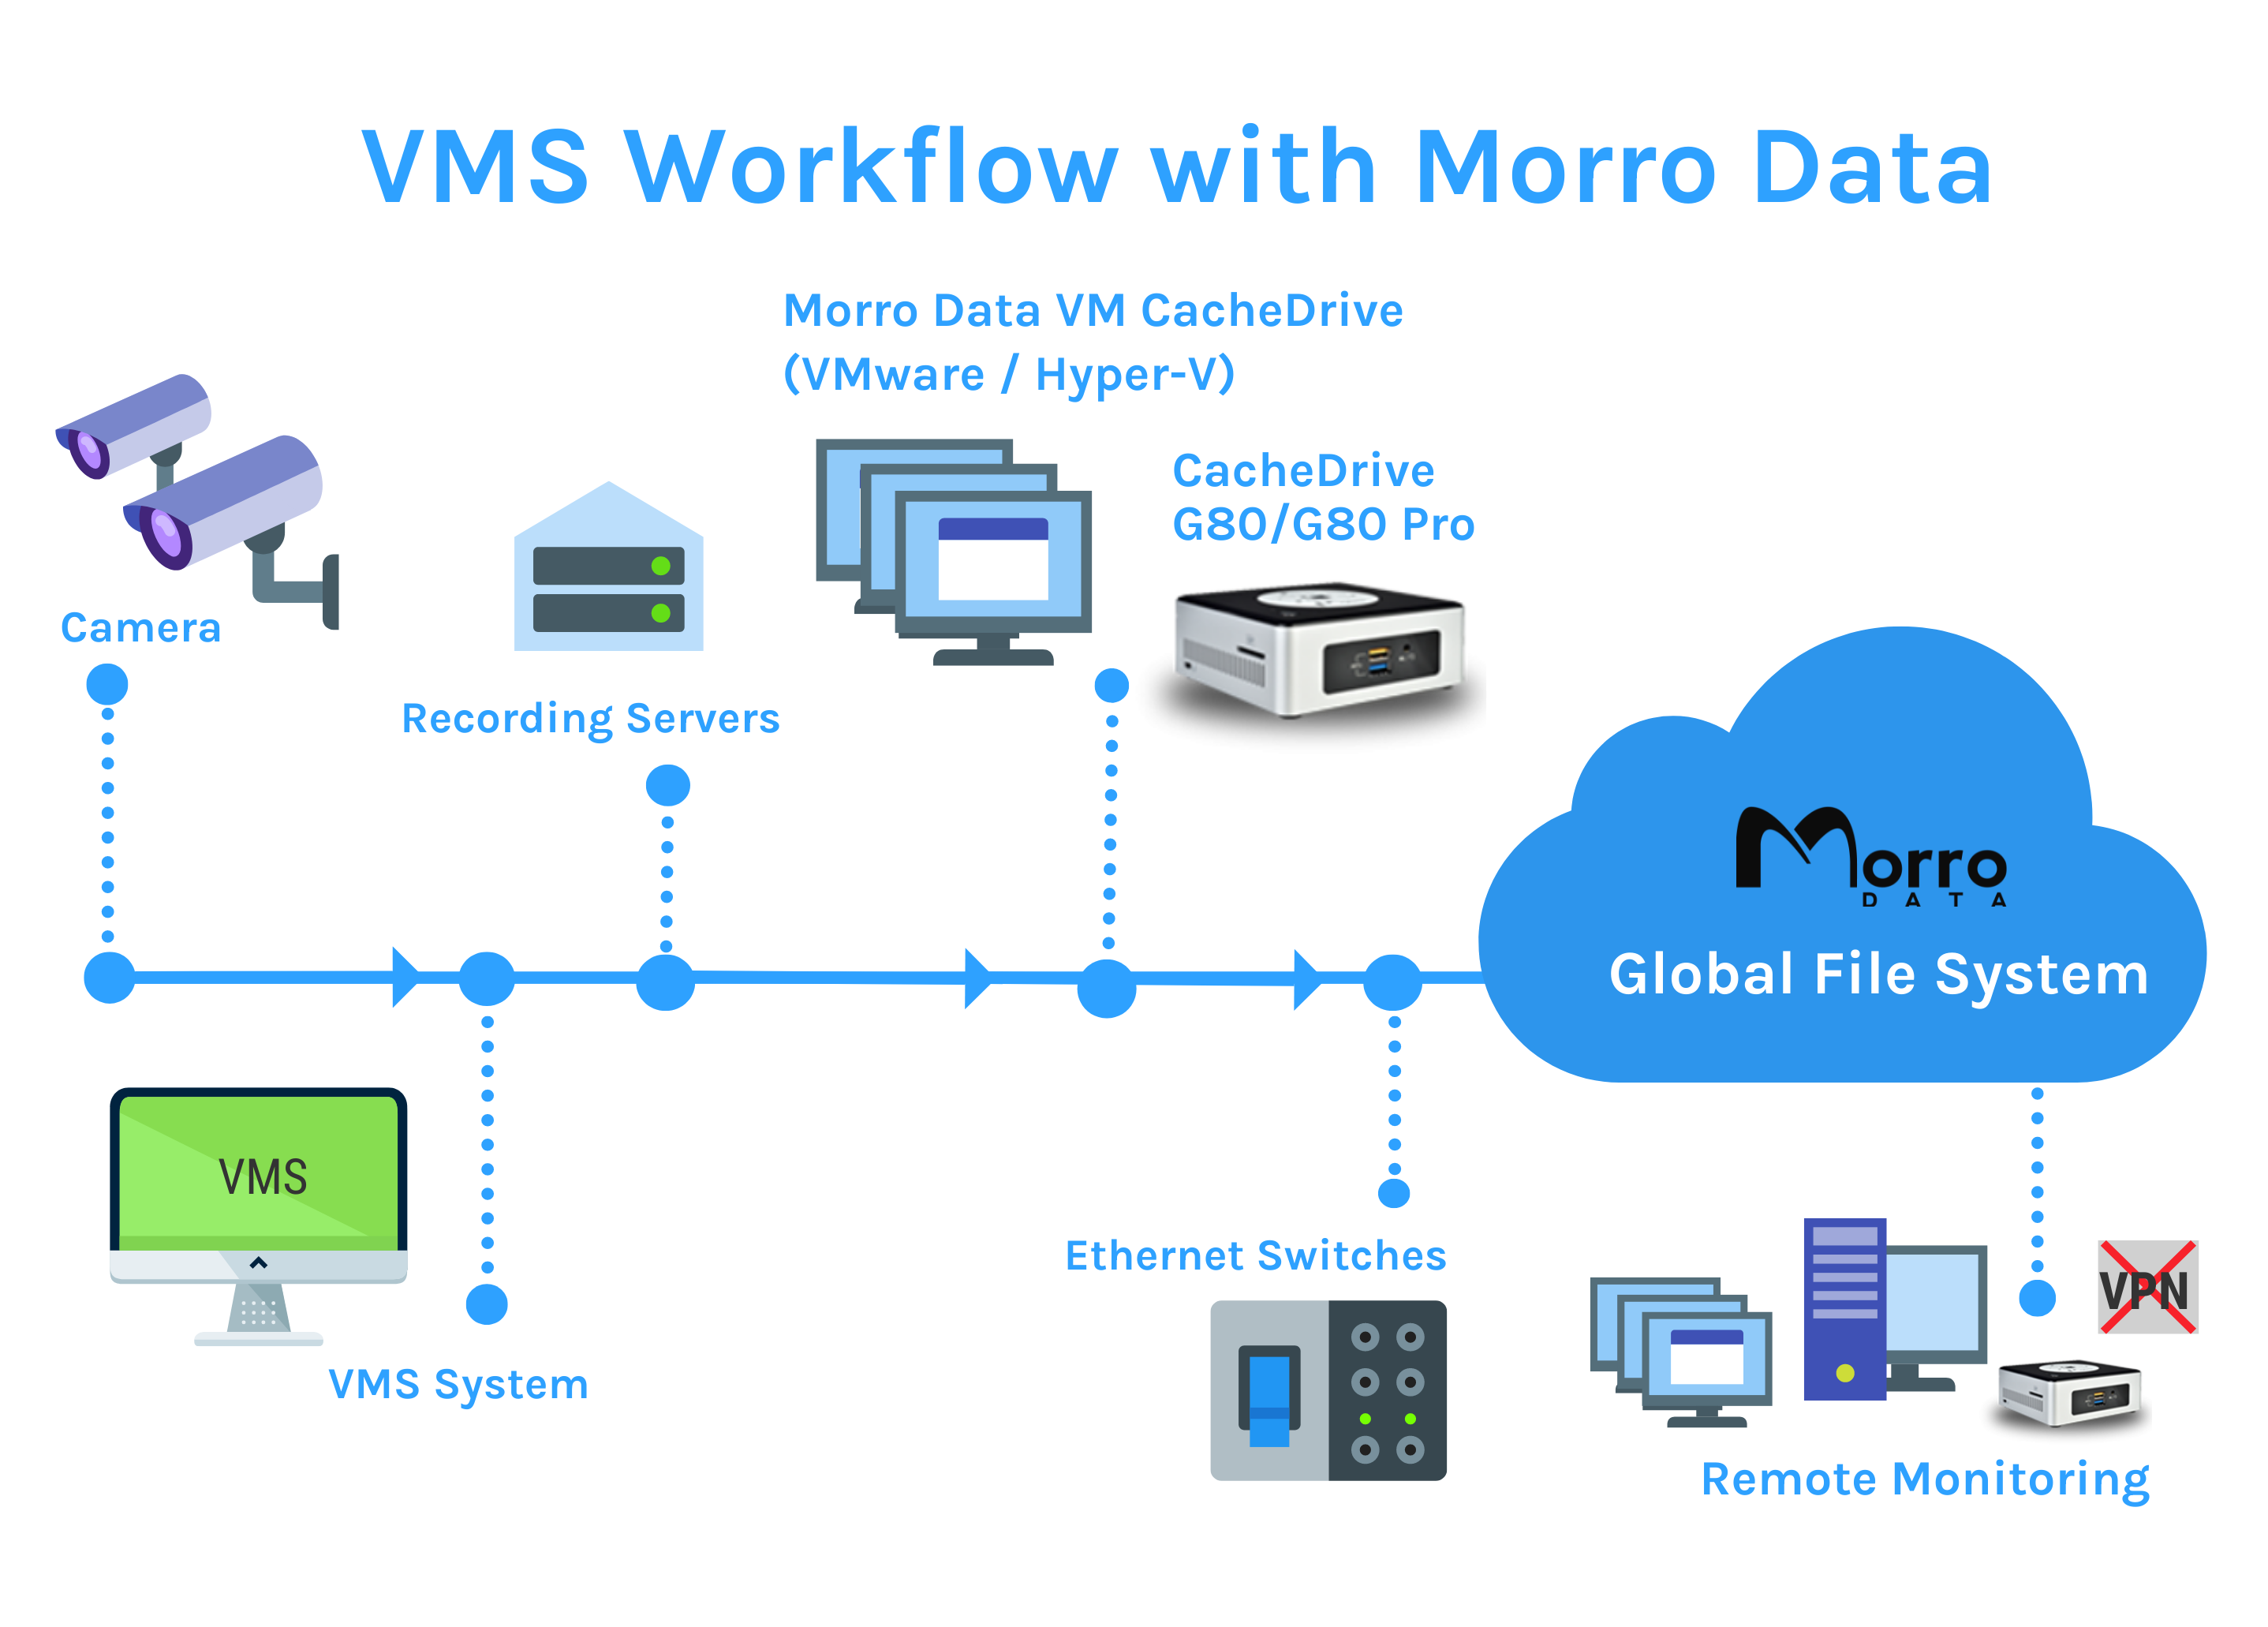 Video Surveillance Storage - Morro Data